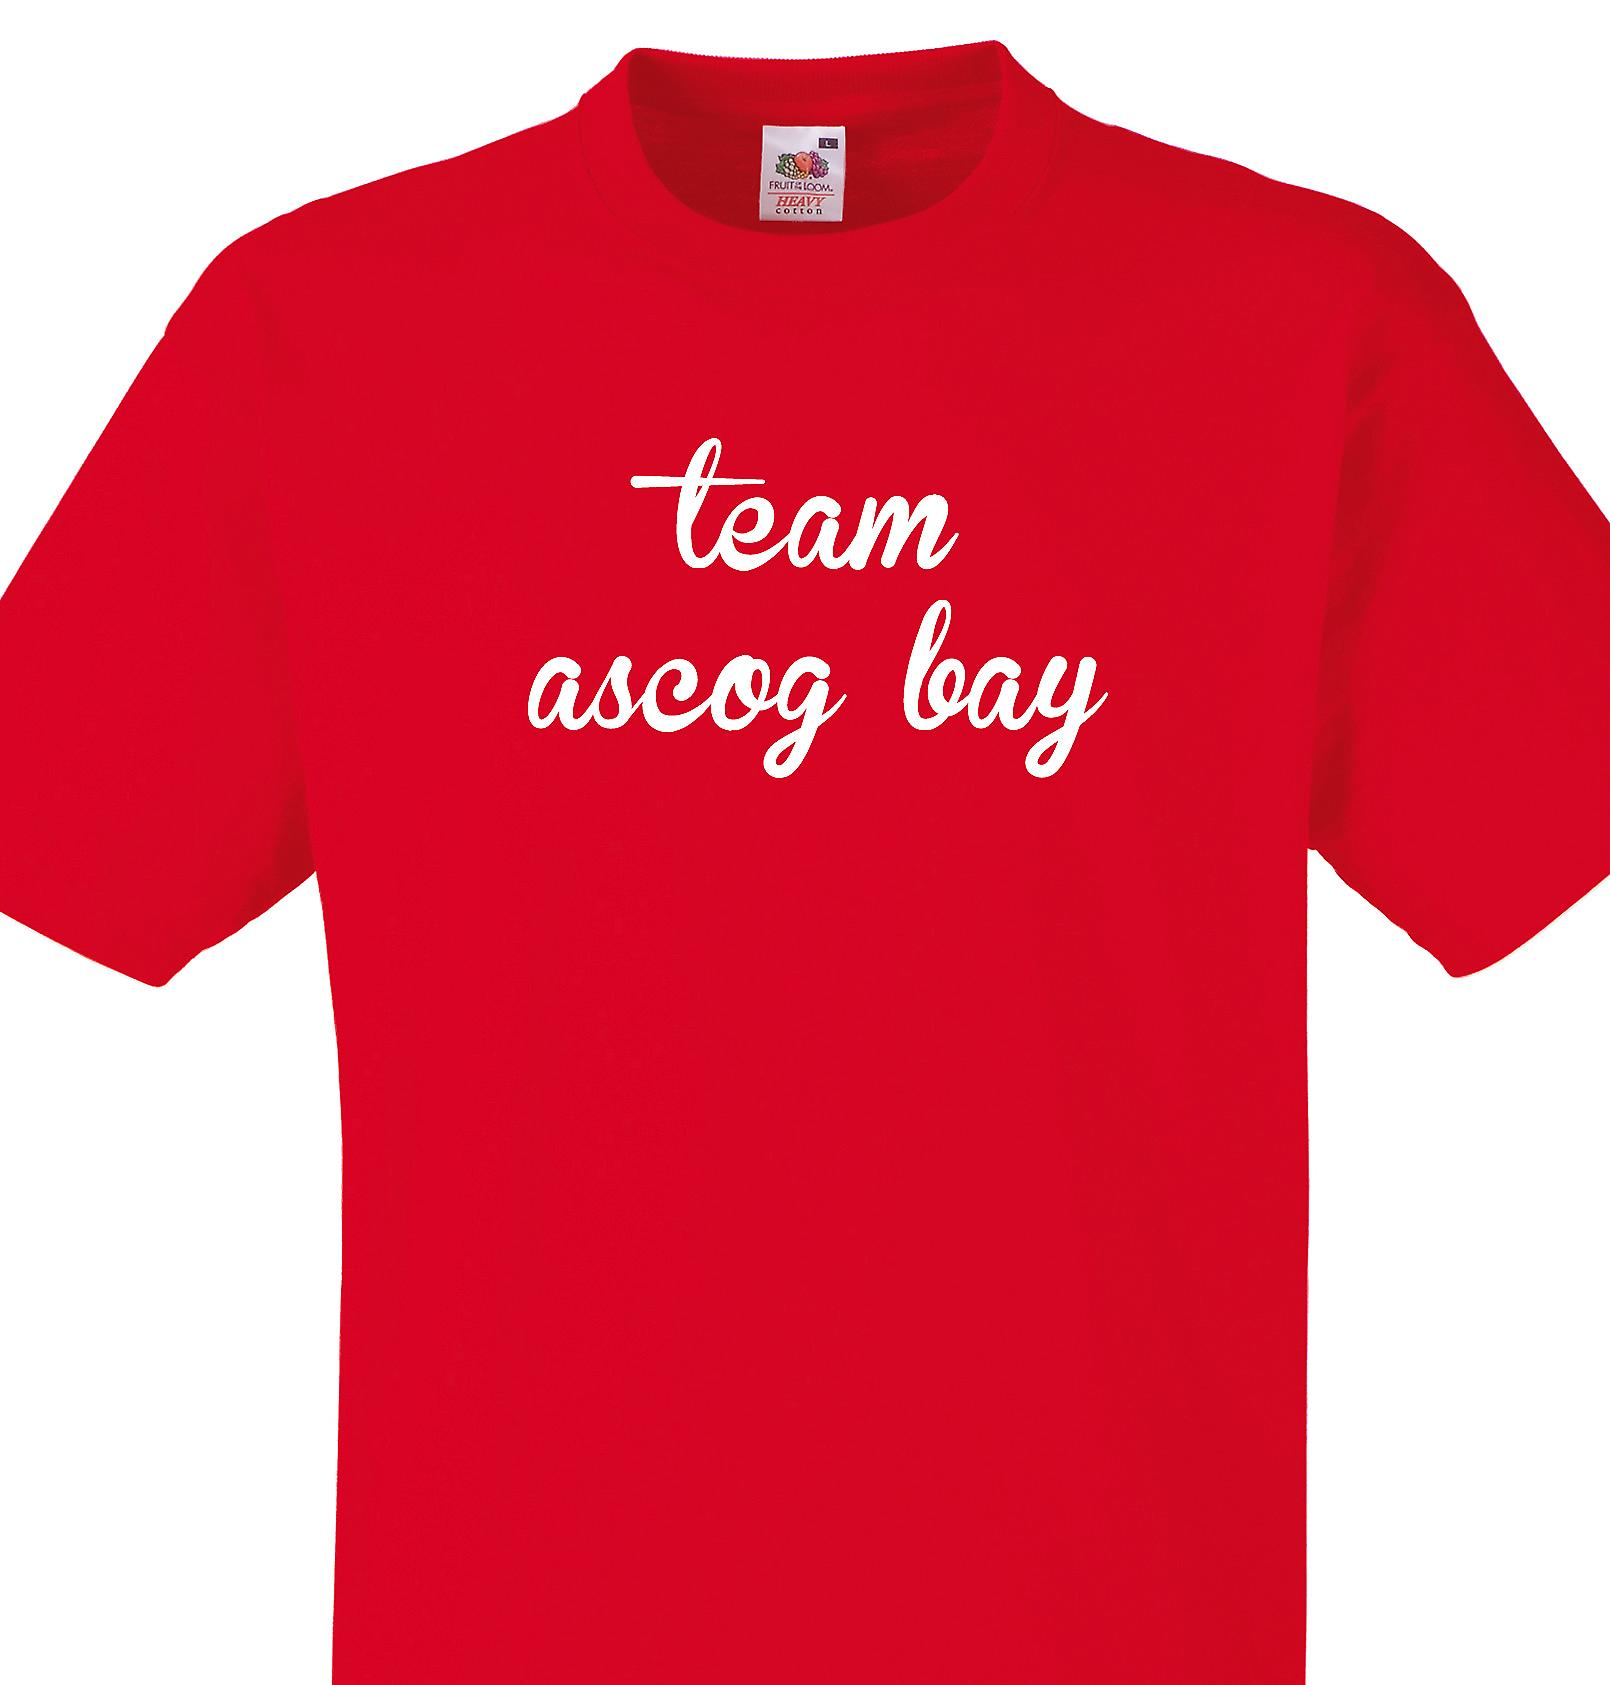 Team Ascog bay Red T shirt